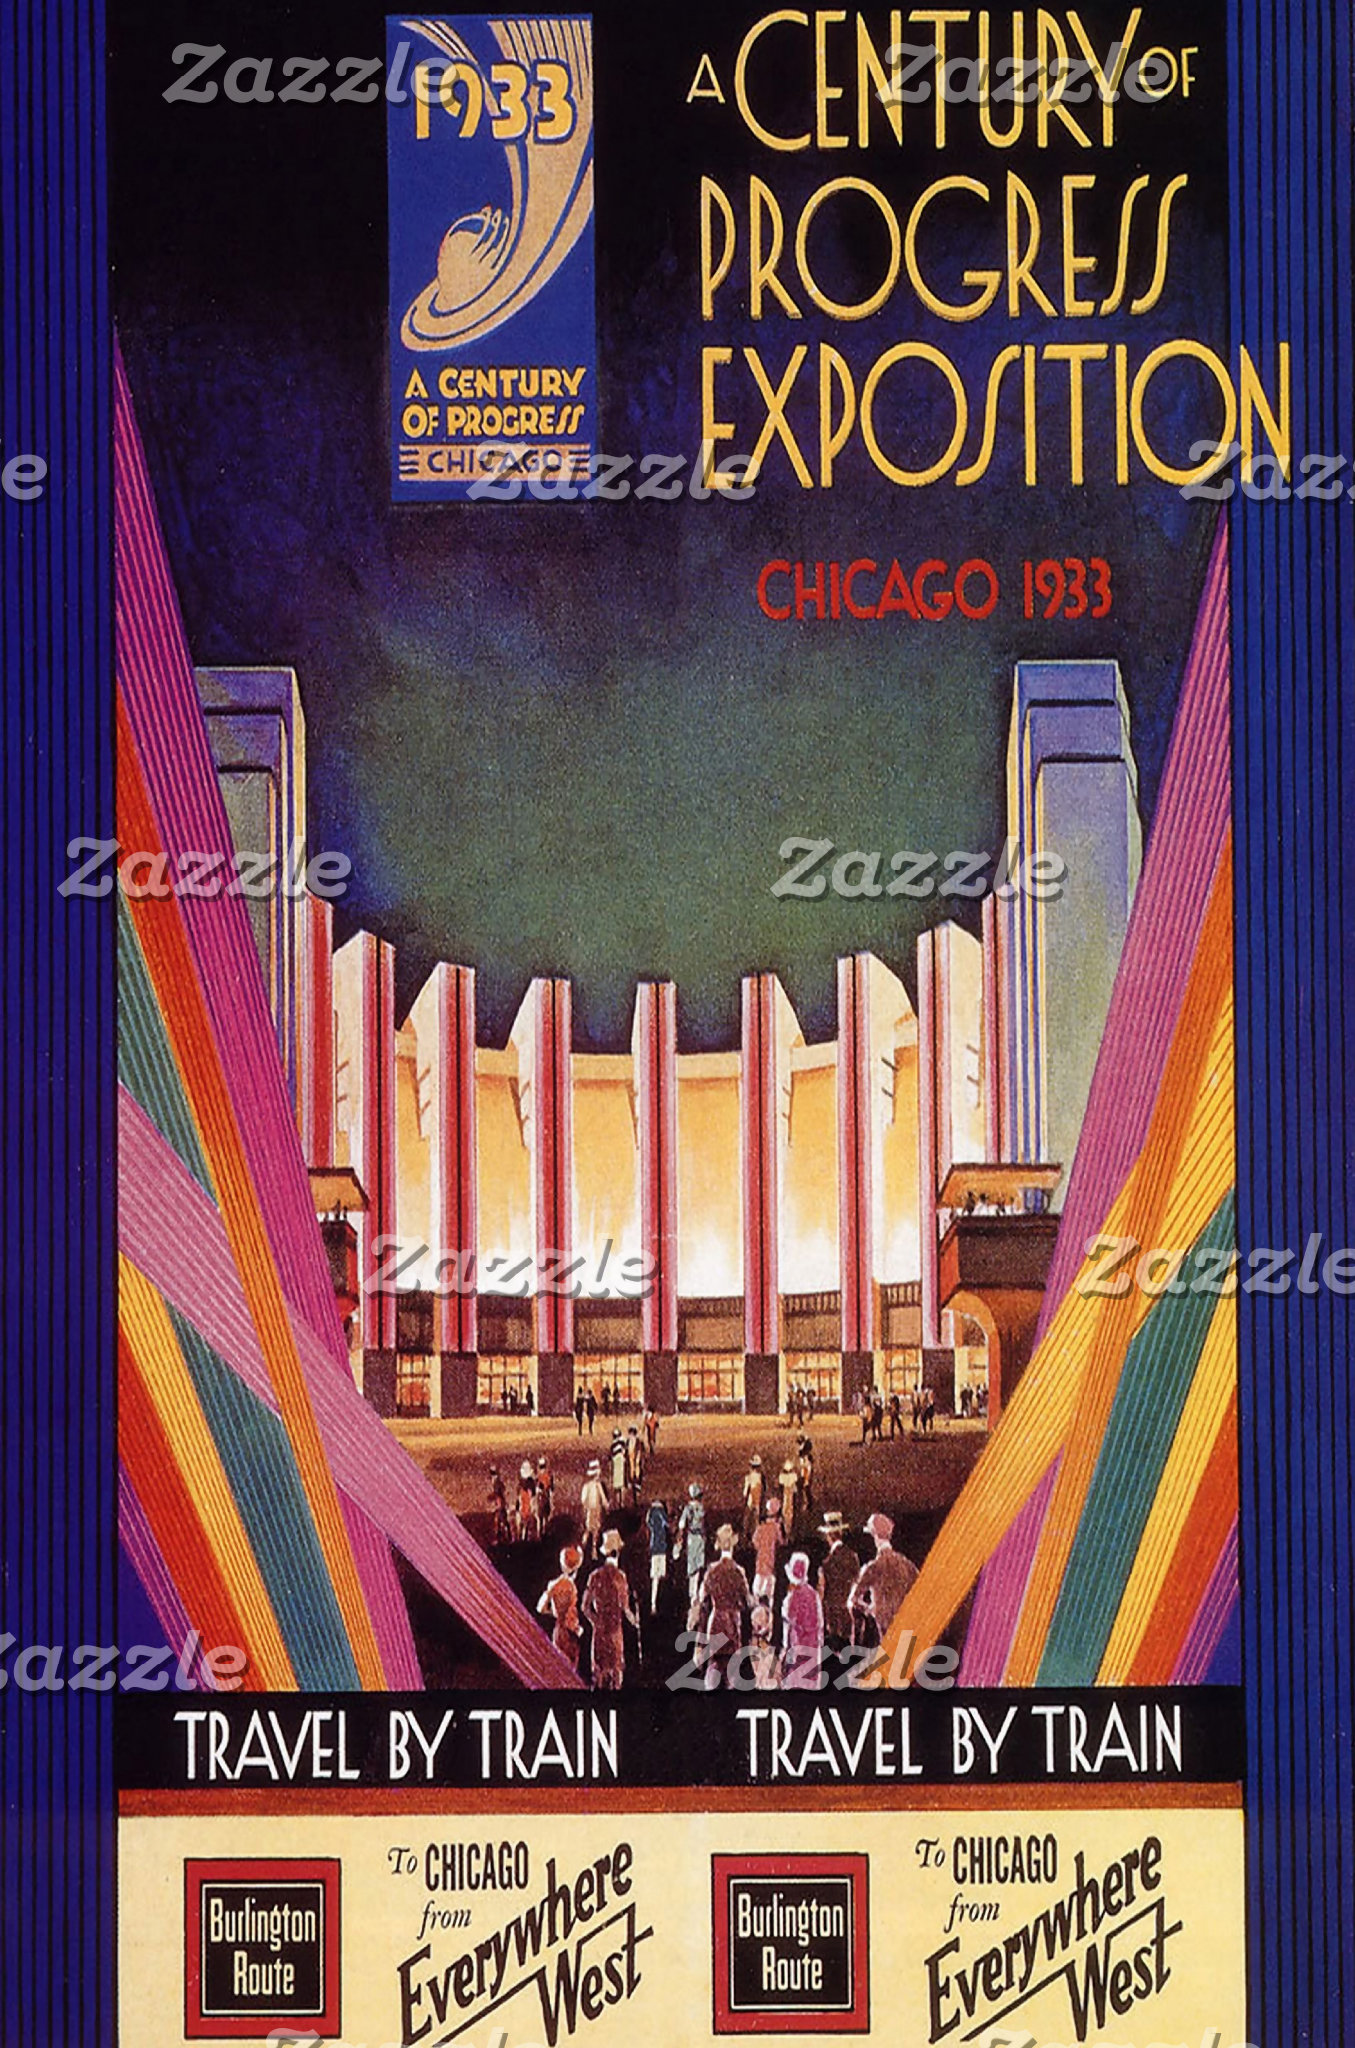 A Century Of Progress Exposition Chicago 1933